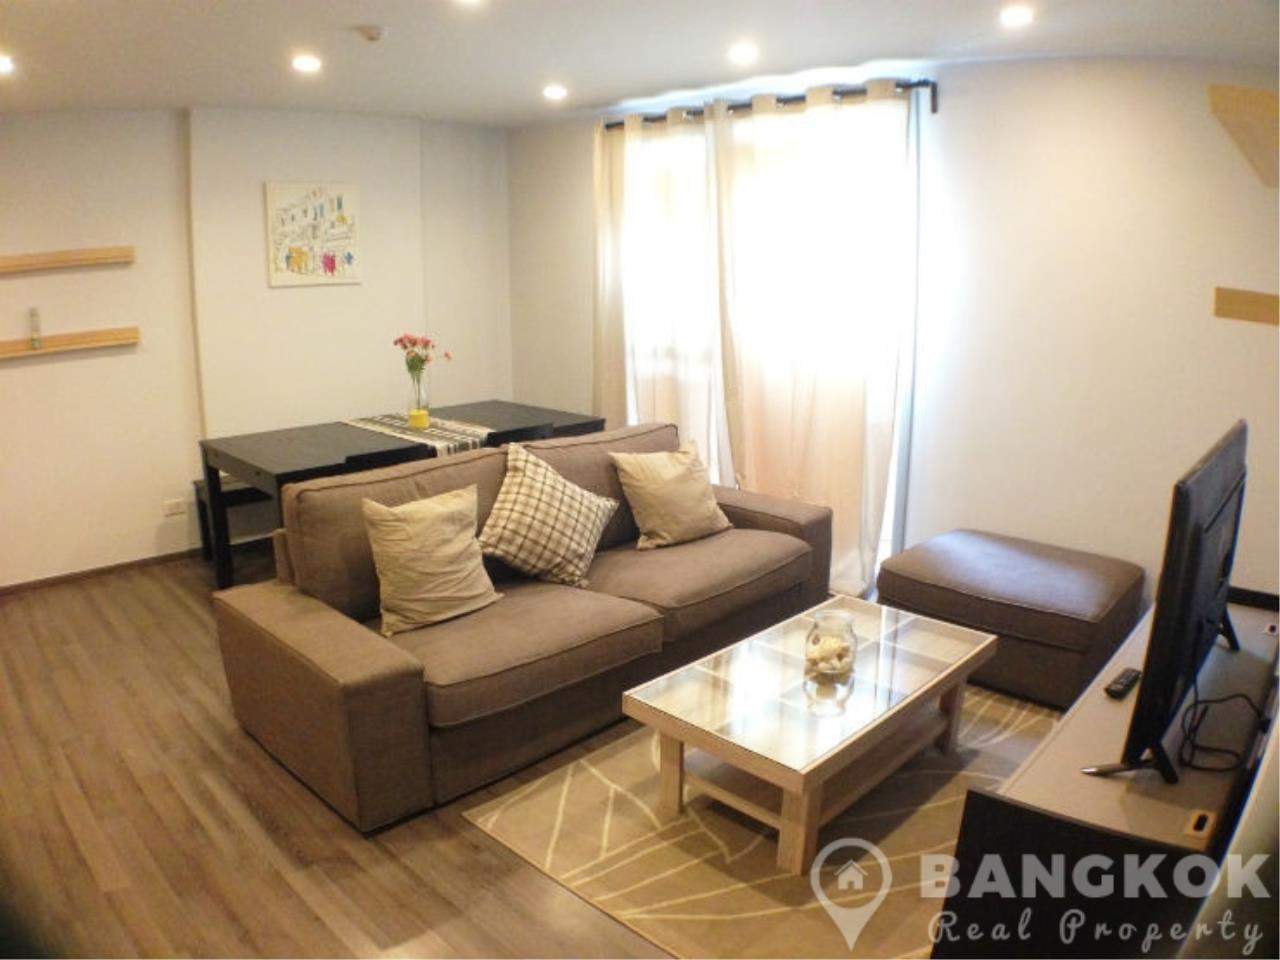 Bangkok Real Property Agency's Sari Sukhumvit 64 | Fabulous 2 Bed 2 Bath near BTS 1